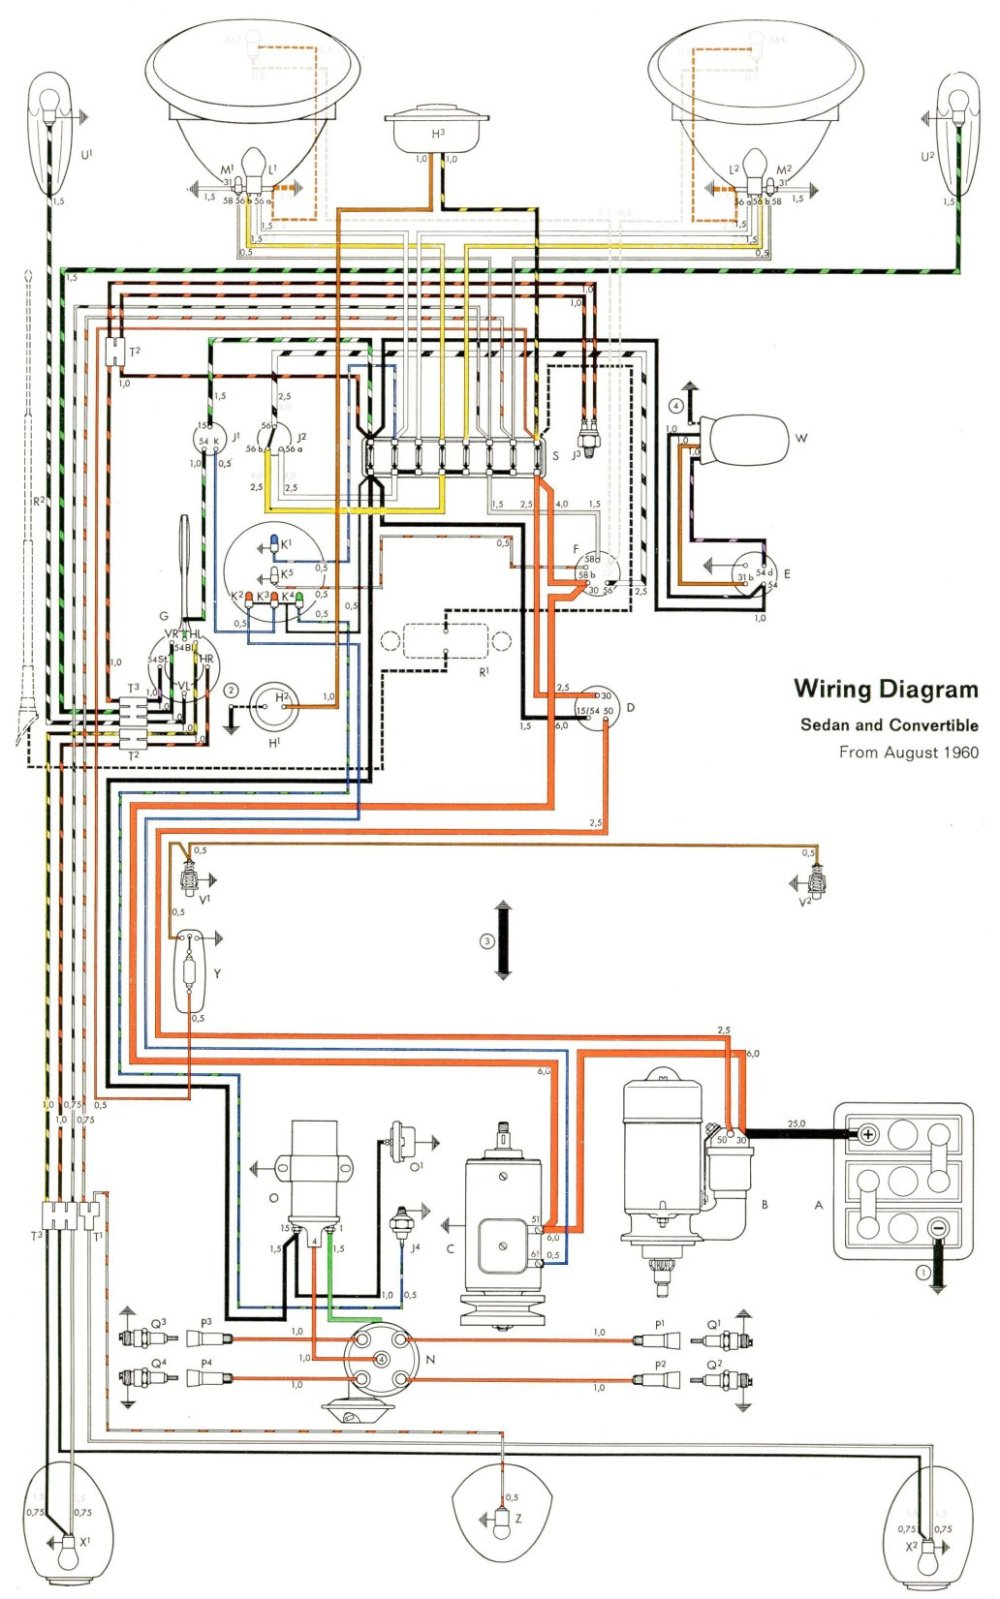 medium resolution of wiring diagram for 1969 vw beetle detailed schematics diagram rh jppastryarts com 1979 vw bus wiring